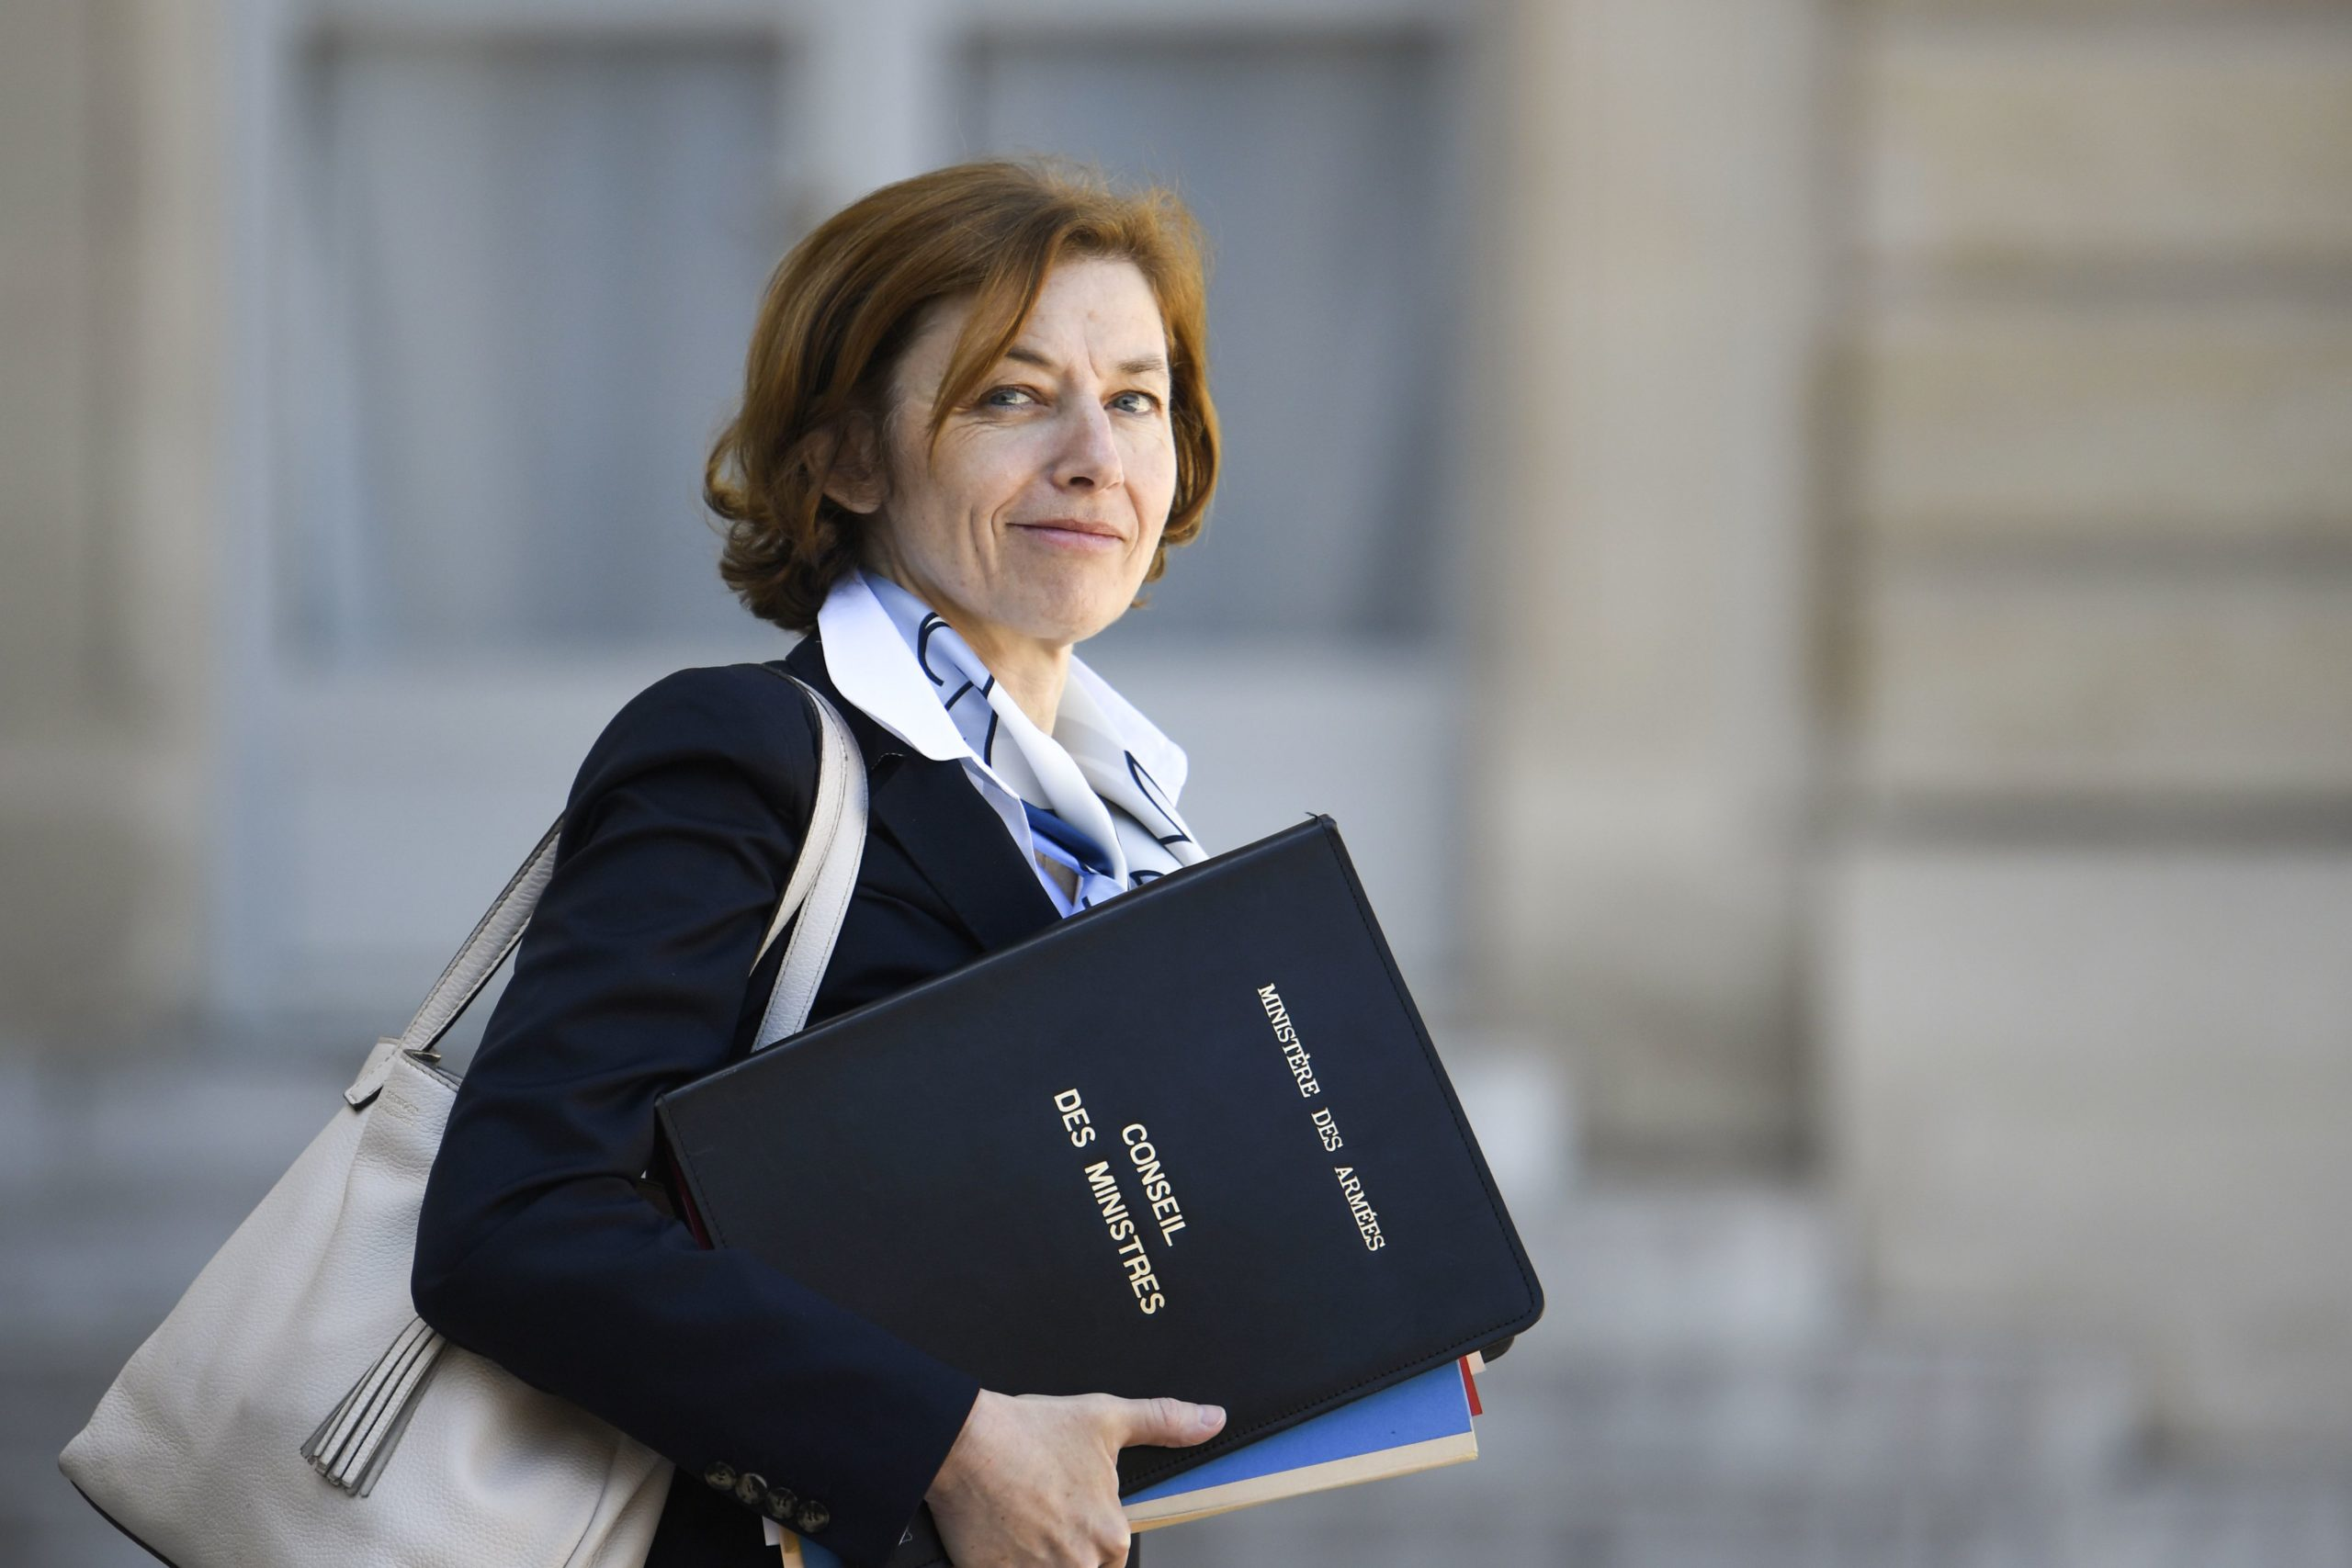 French Defence Minister Florence Parly leaves the Elysee Presidential palace in Paris, on April 27, 2018, after the weekly cabinet meeting. (Photo by Eric FEFERBERG / AFP) (Photo credit should read ERIC FEFERBERG/AFP via Getty Images)